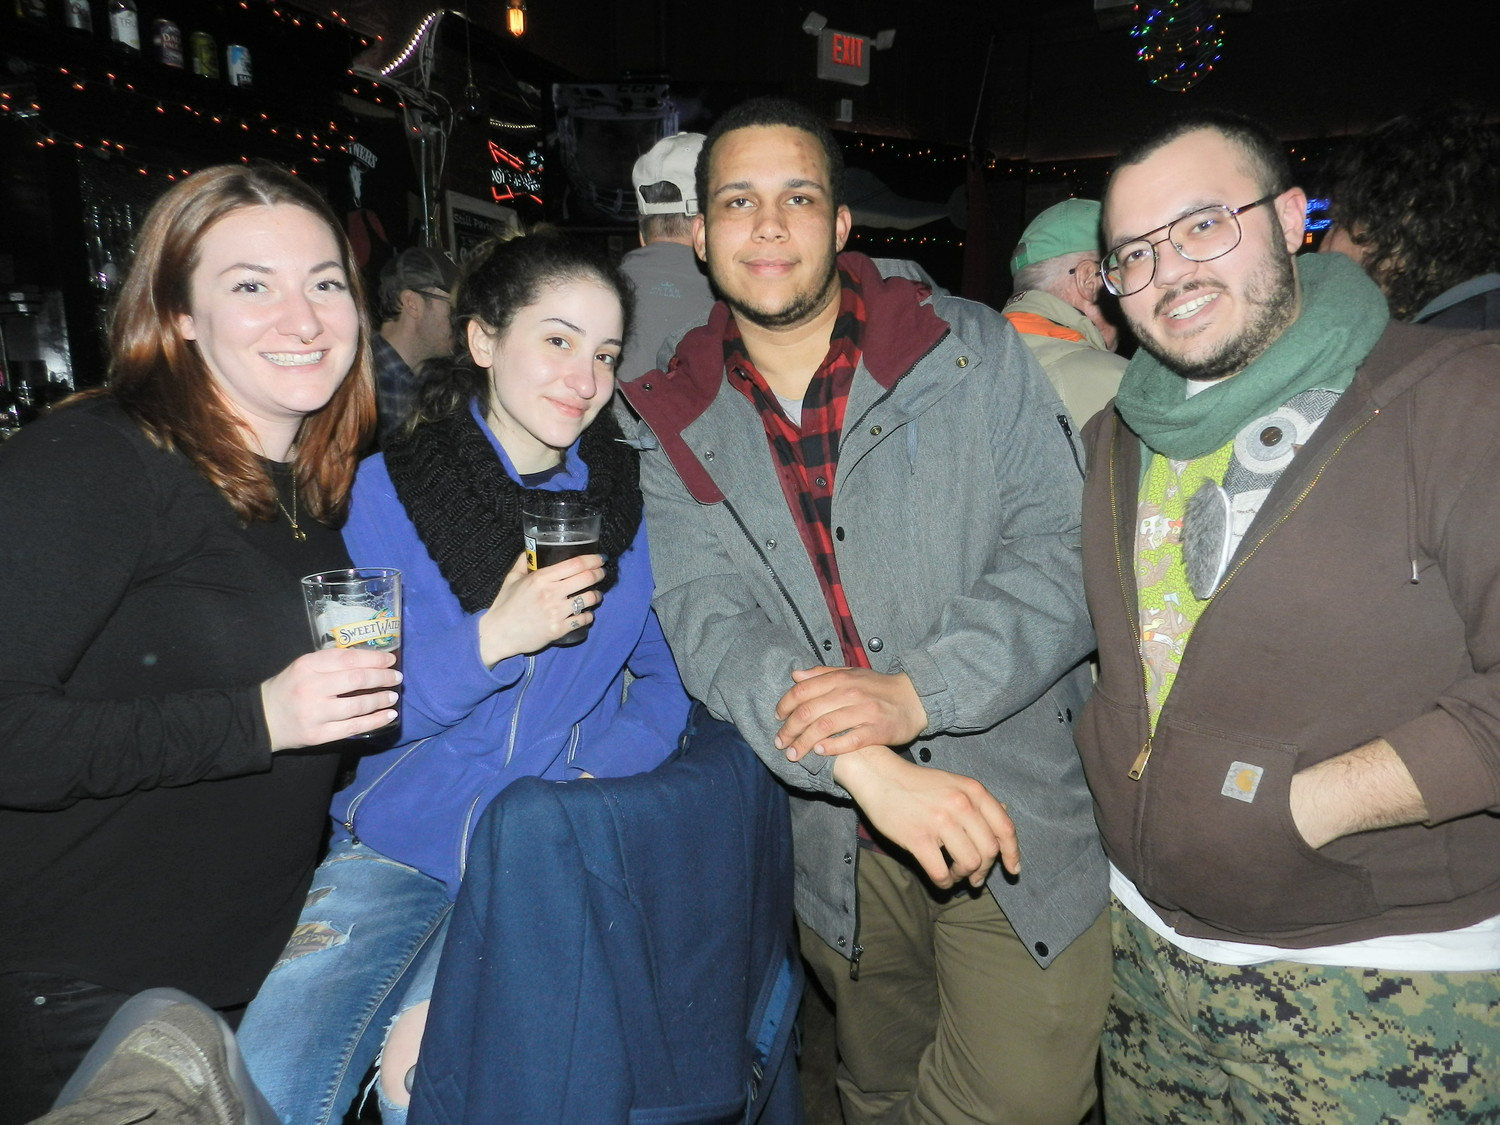 From left: Kayte Jolly, Jahira Flores, Gunner Andahazy and Will Ehmann enjoyed catching up at the bar during the crawl.